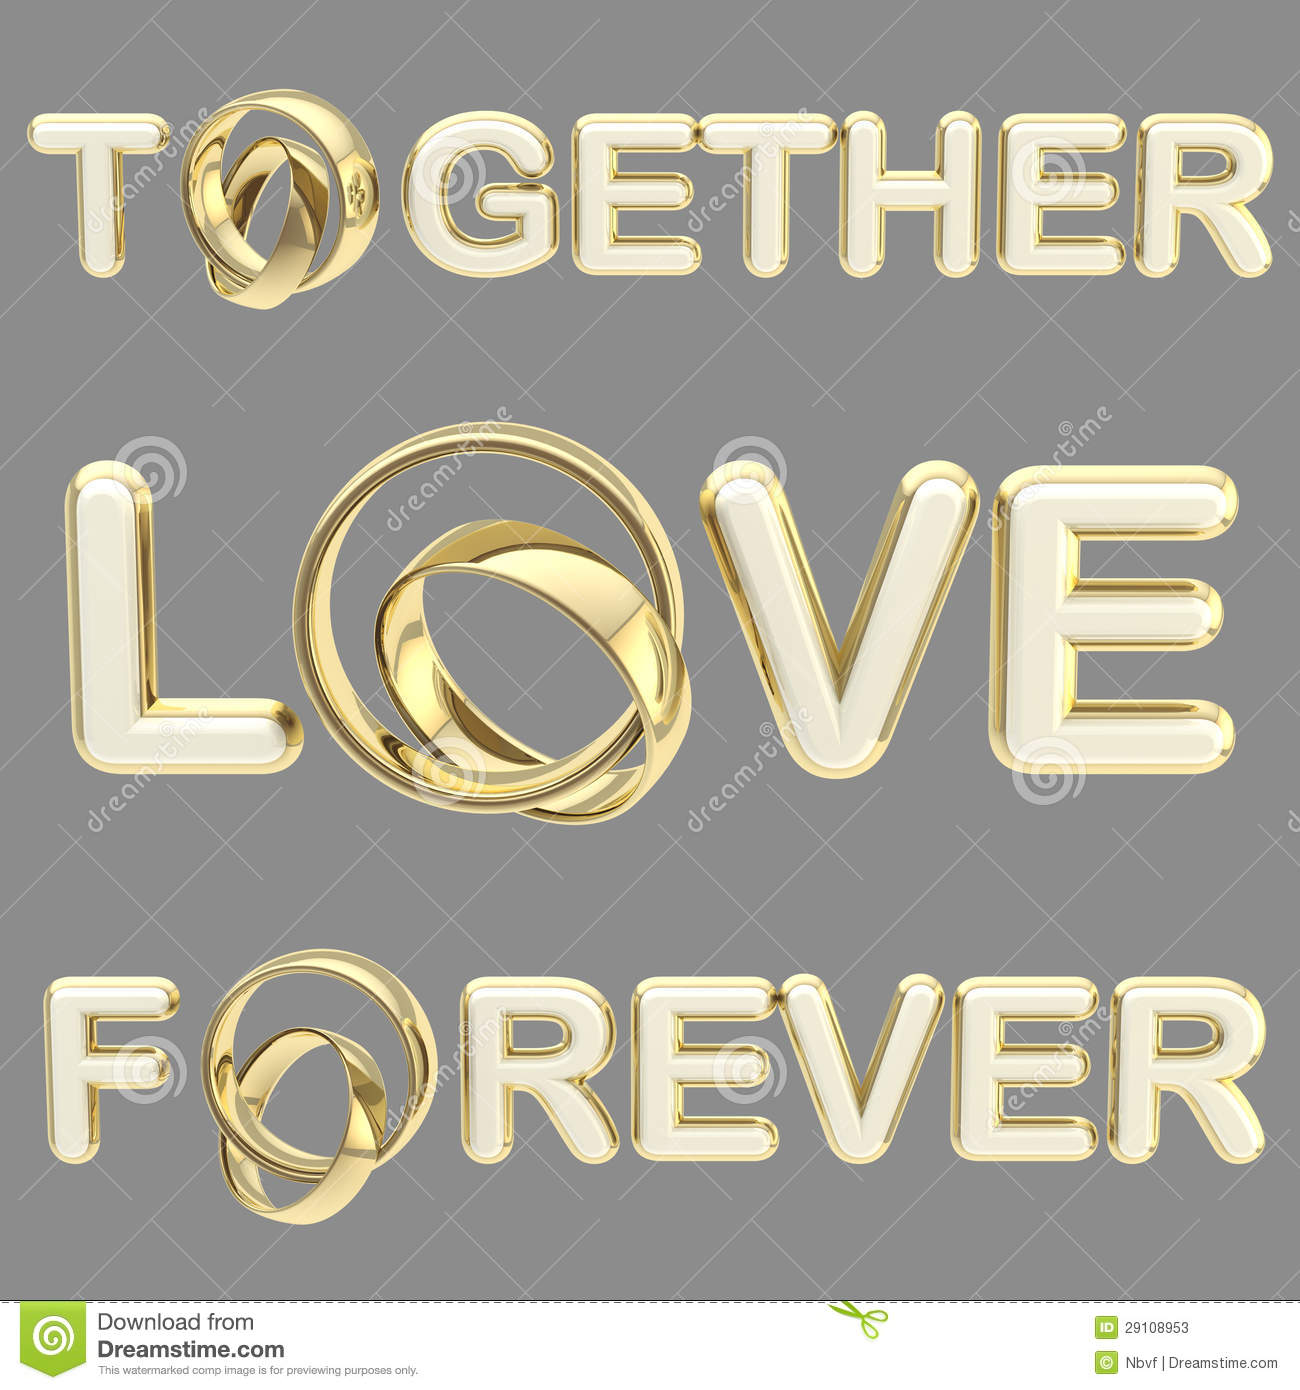 Love Together Forever Words Isolated On Grey Stock Photos Image 29108953